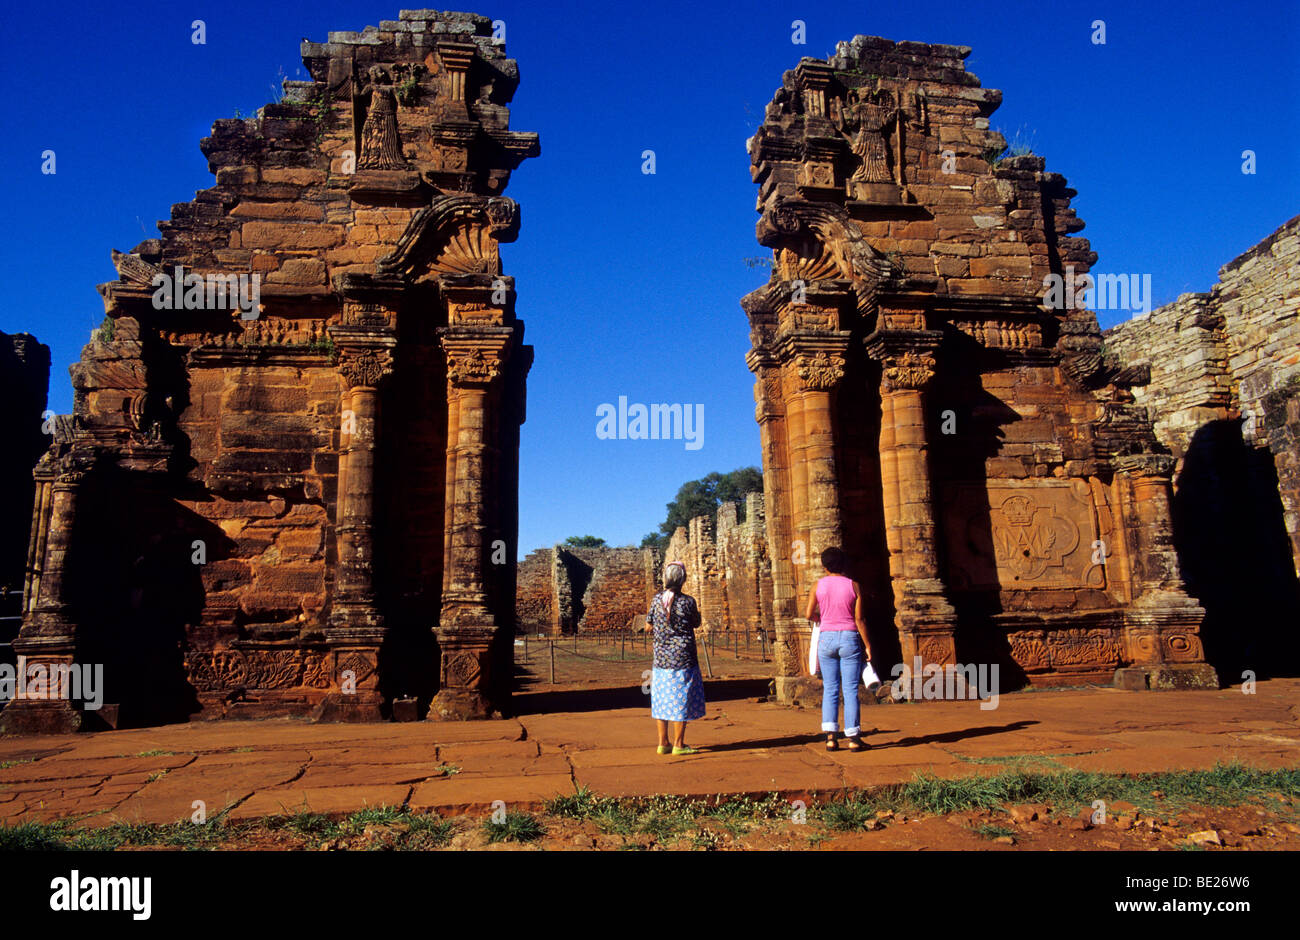 Church gate. Jesuit Mission of San Ignacio Mini ruins. Misiones province. Argentina. - Stock Image